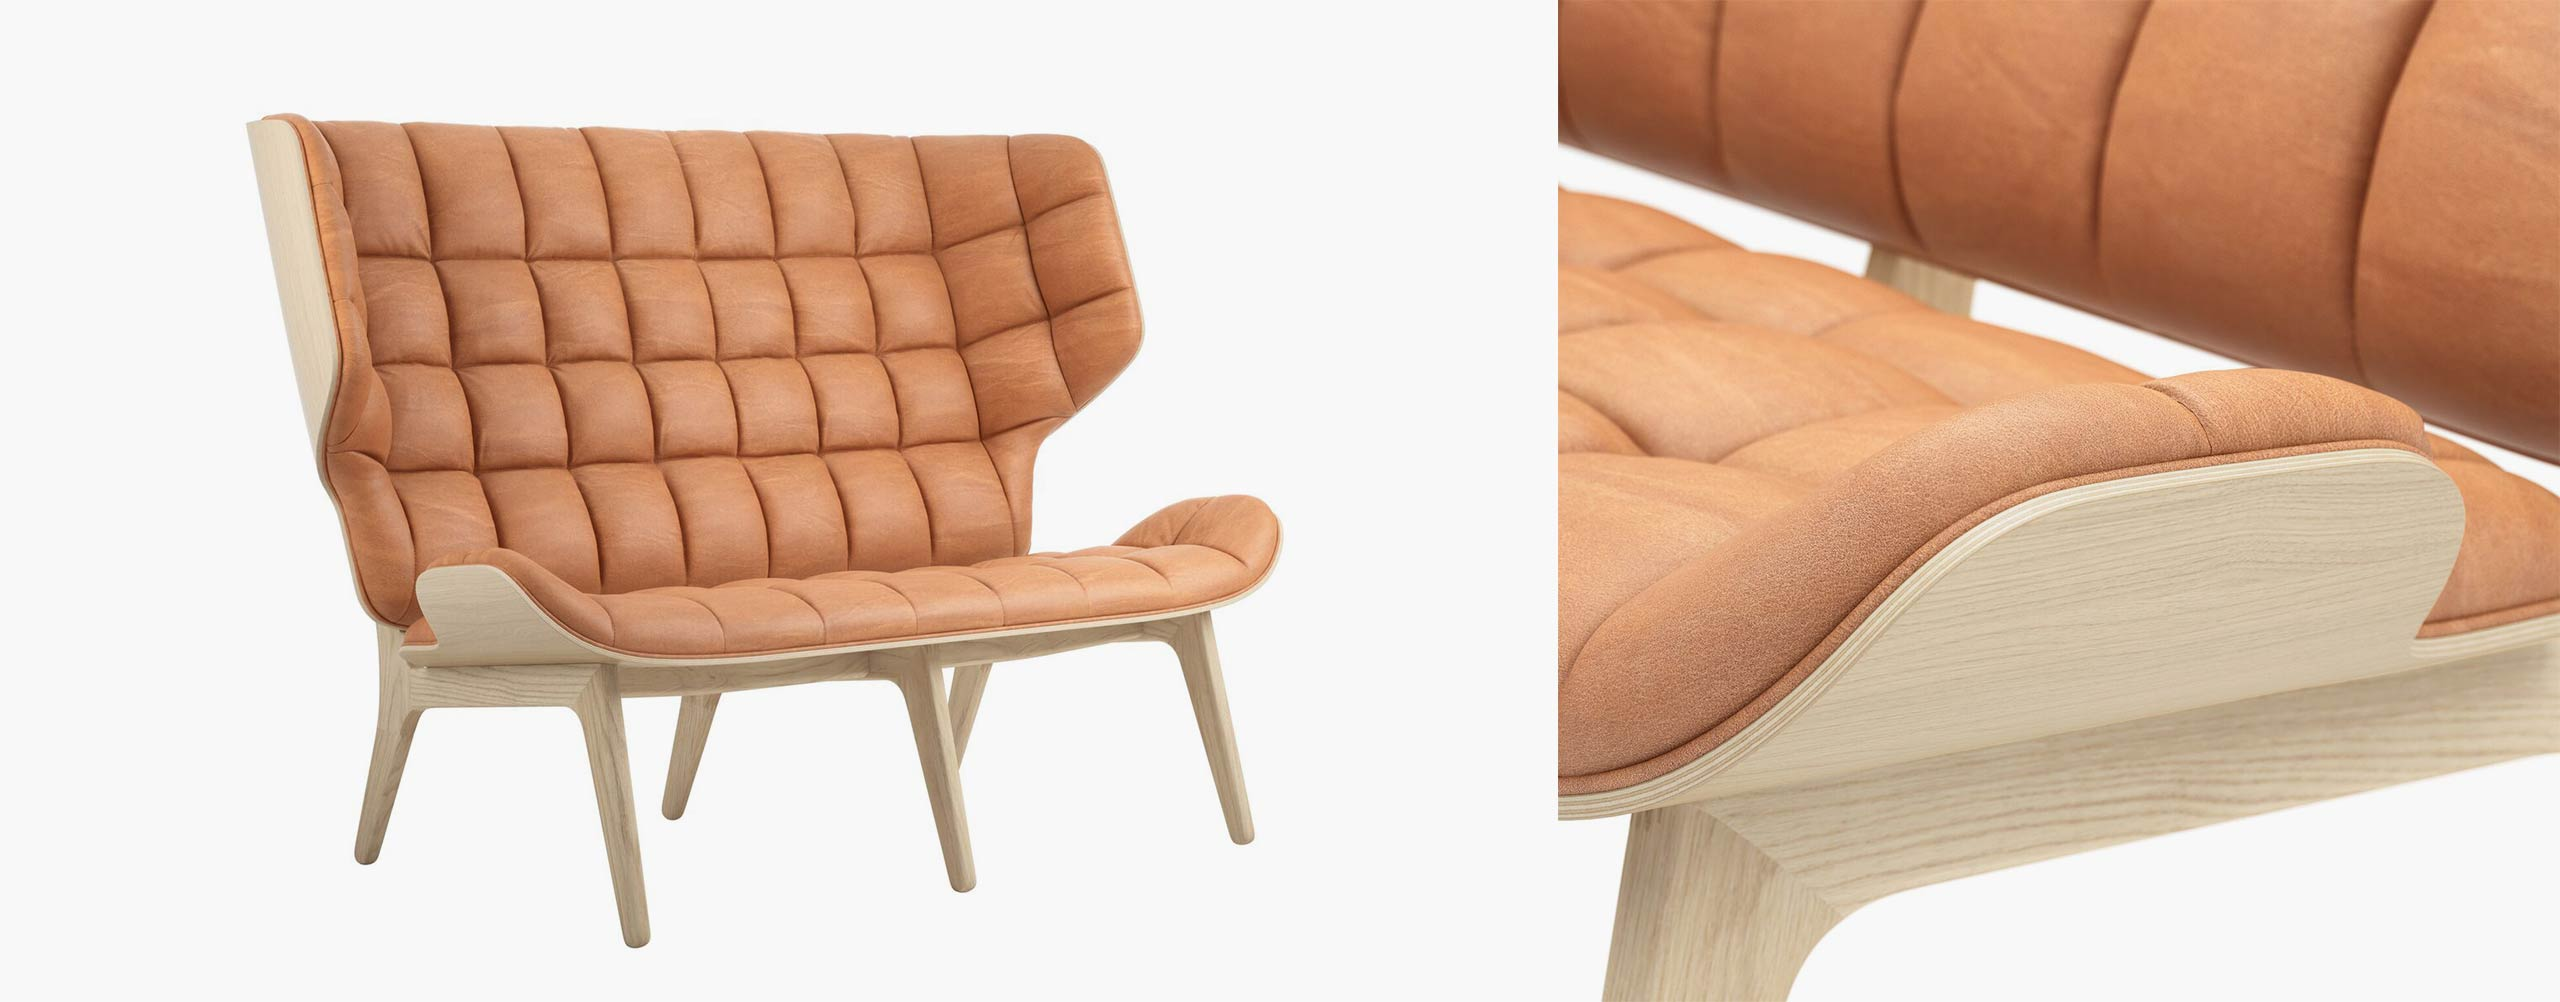 Close-up and full view at NORR11's Mammoth sofa - CGI and 3d model by Design Connected